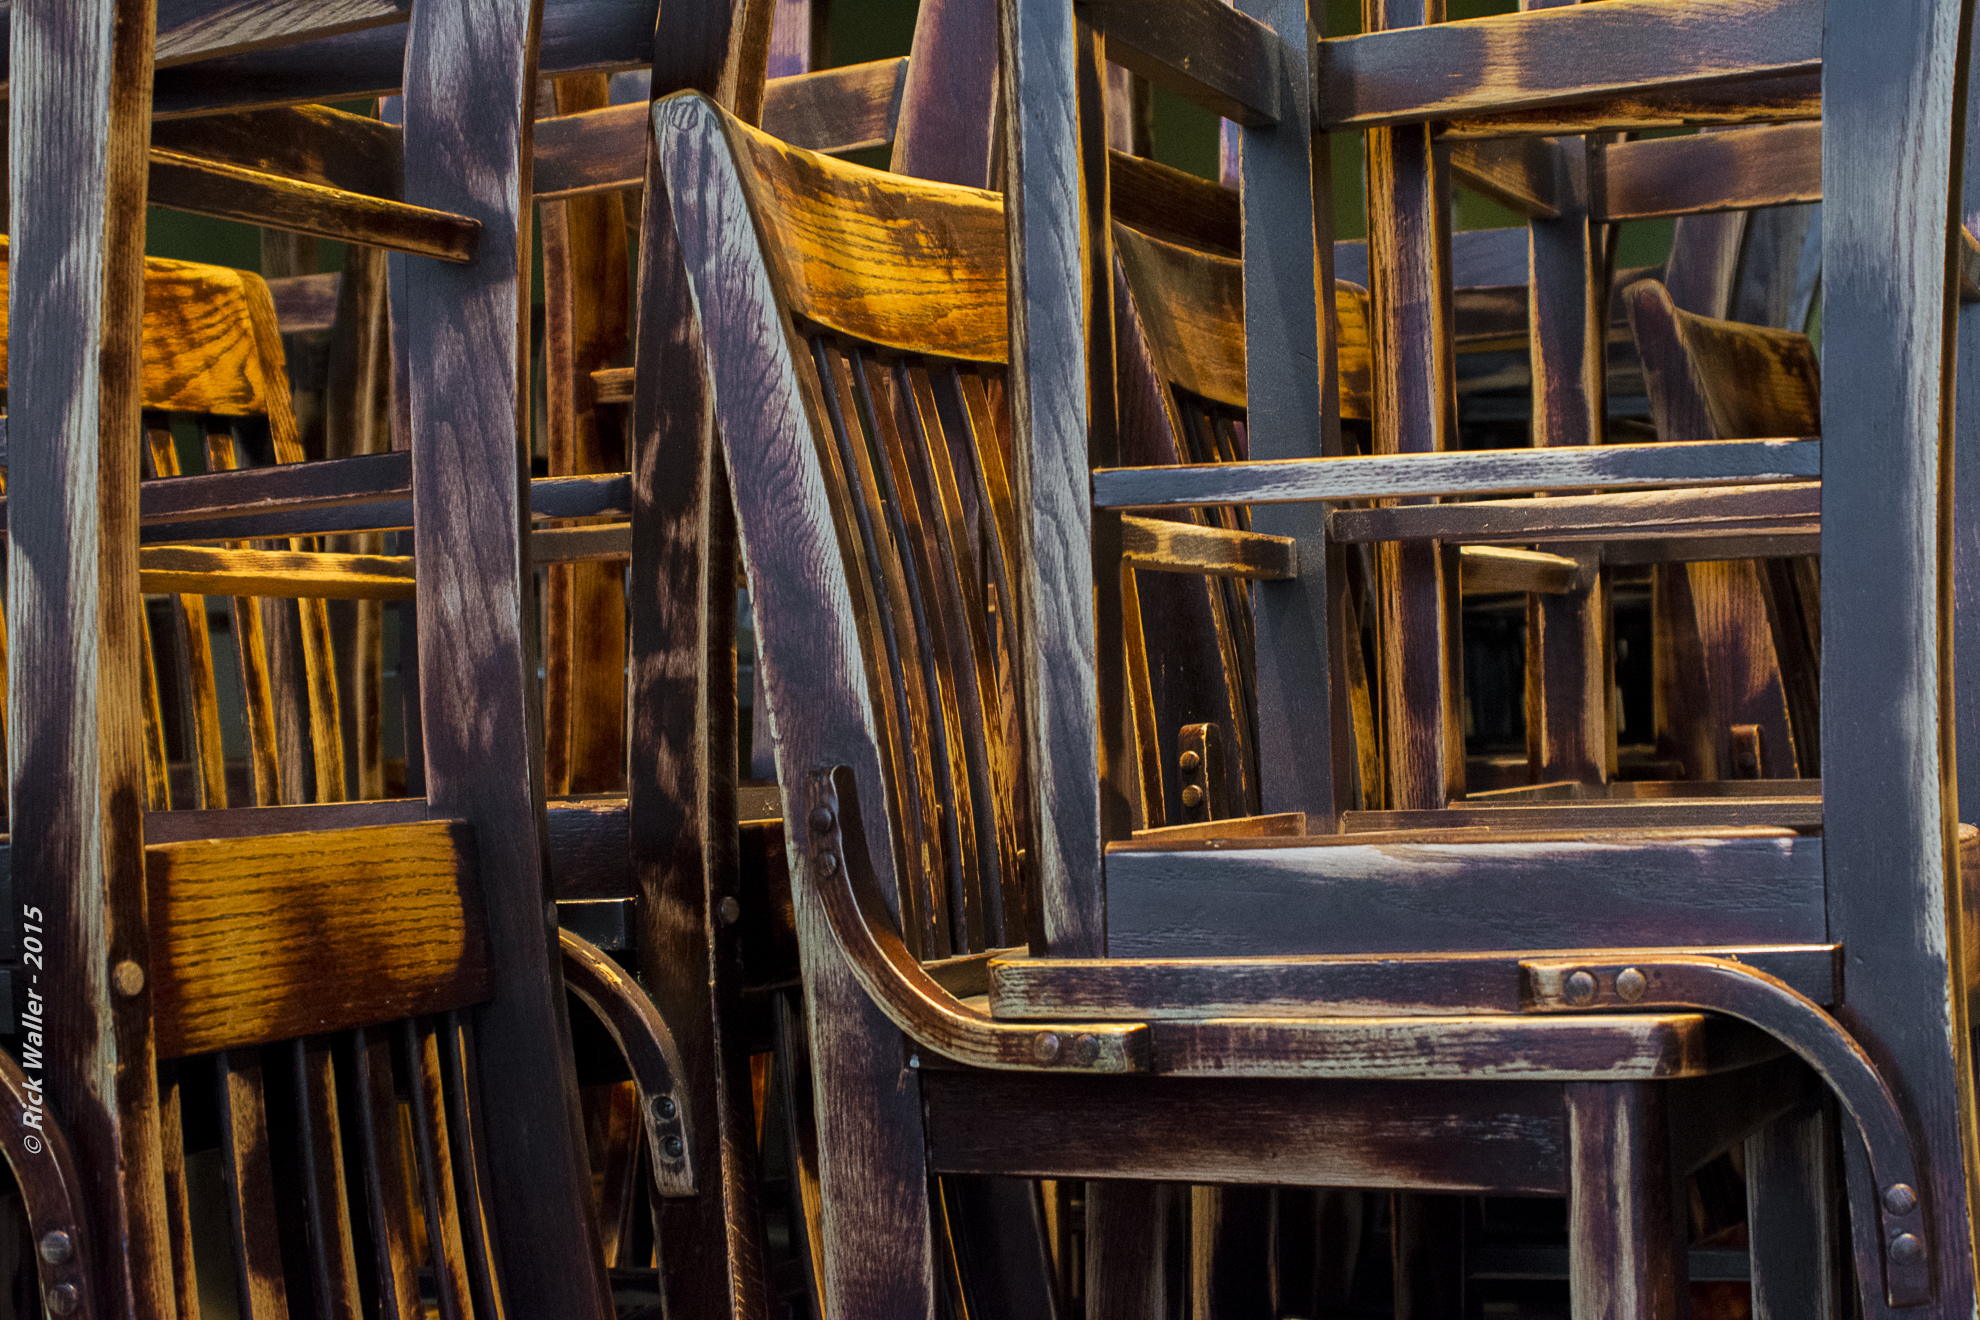 Recycled Chairs - Unwined at 980 © Rick Waller 2015 1980 - UW